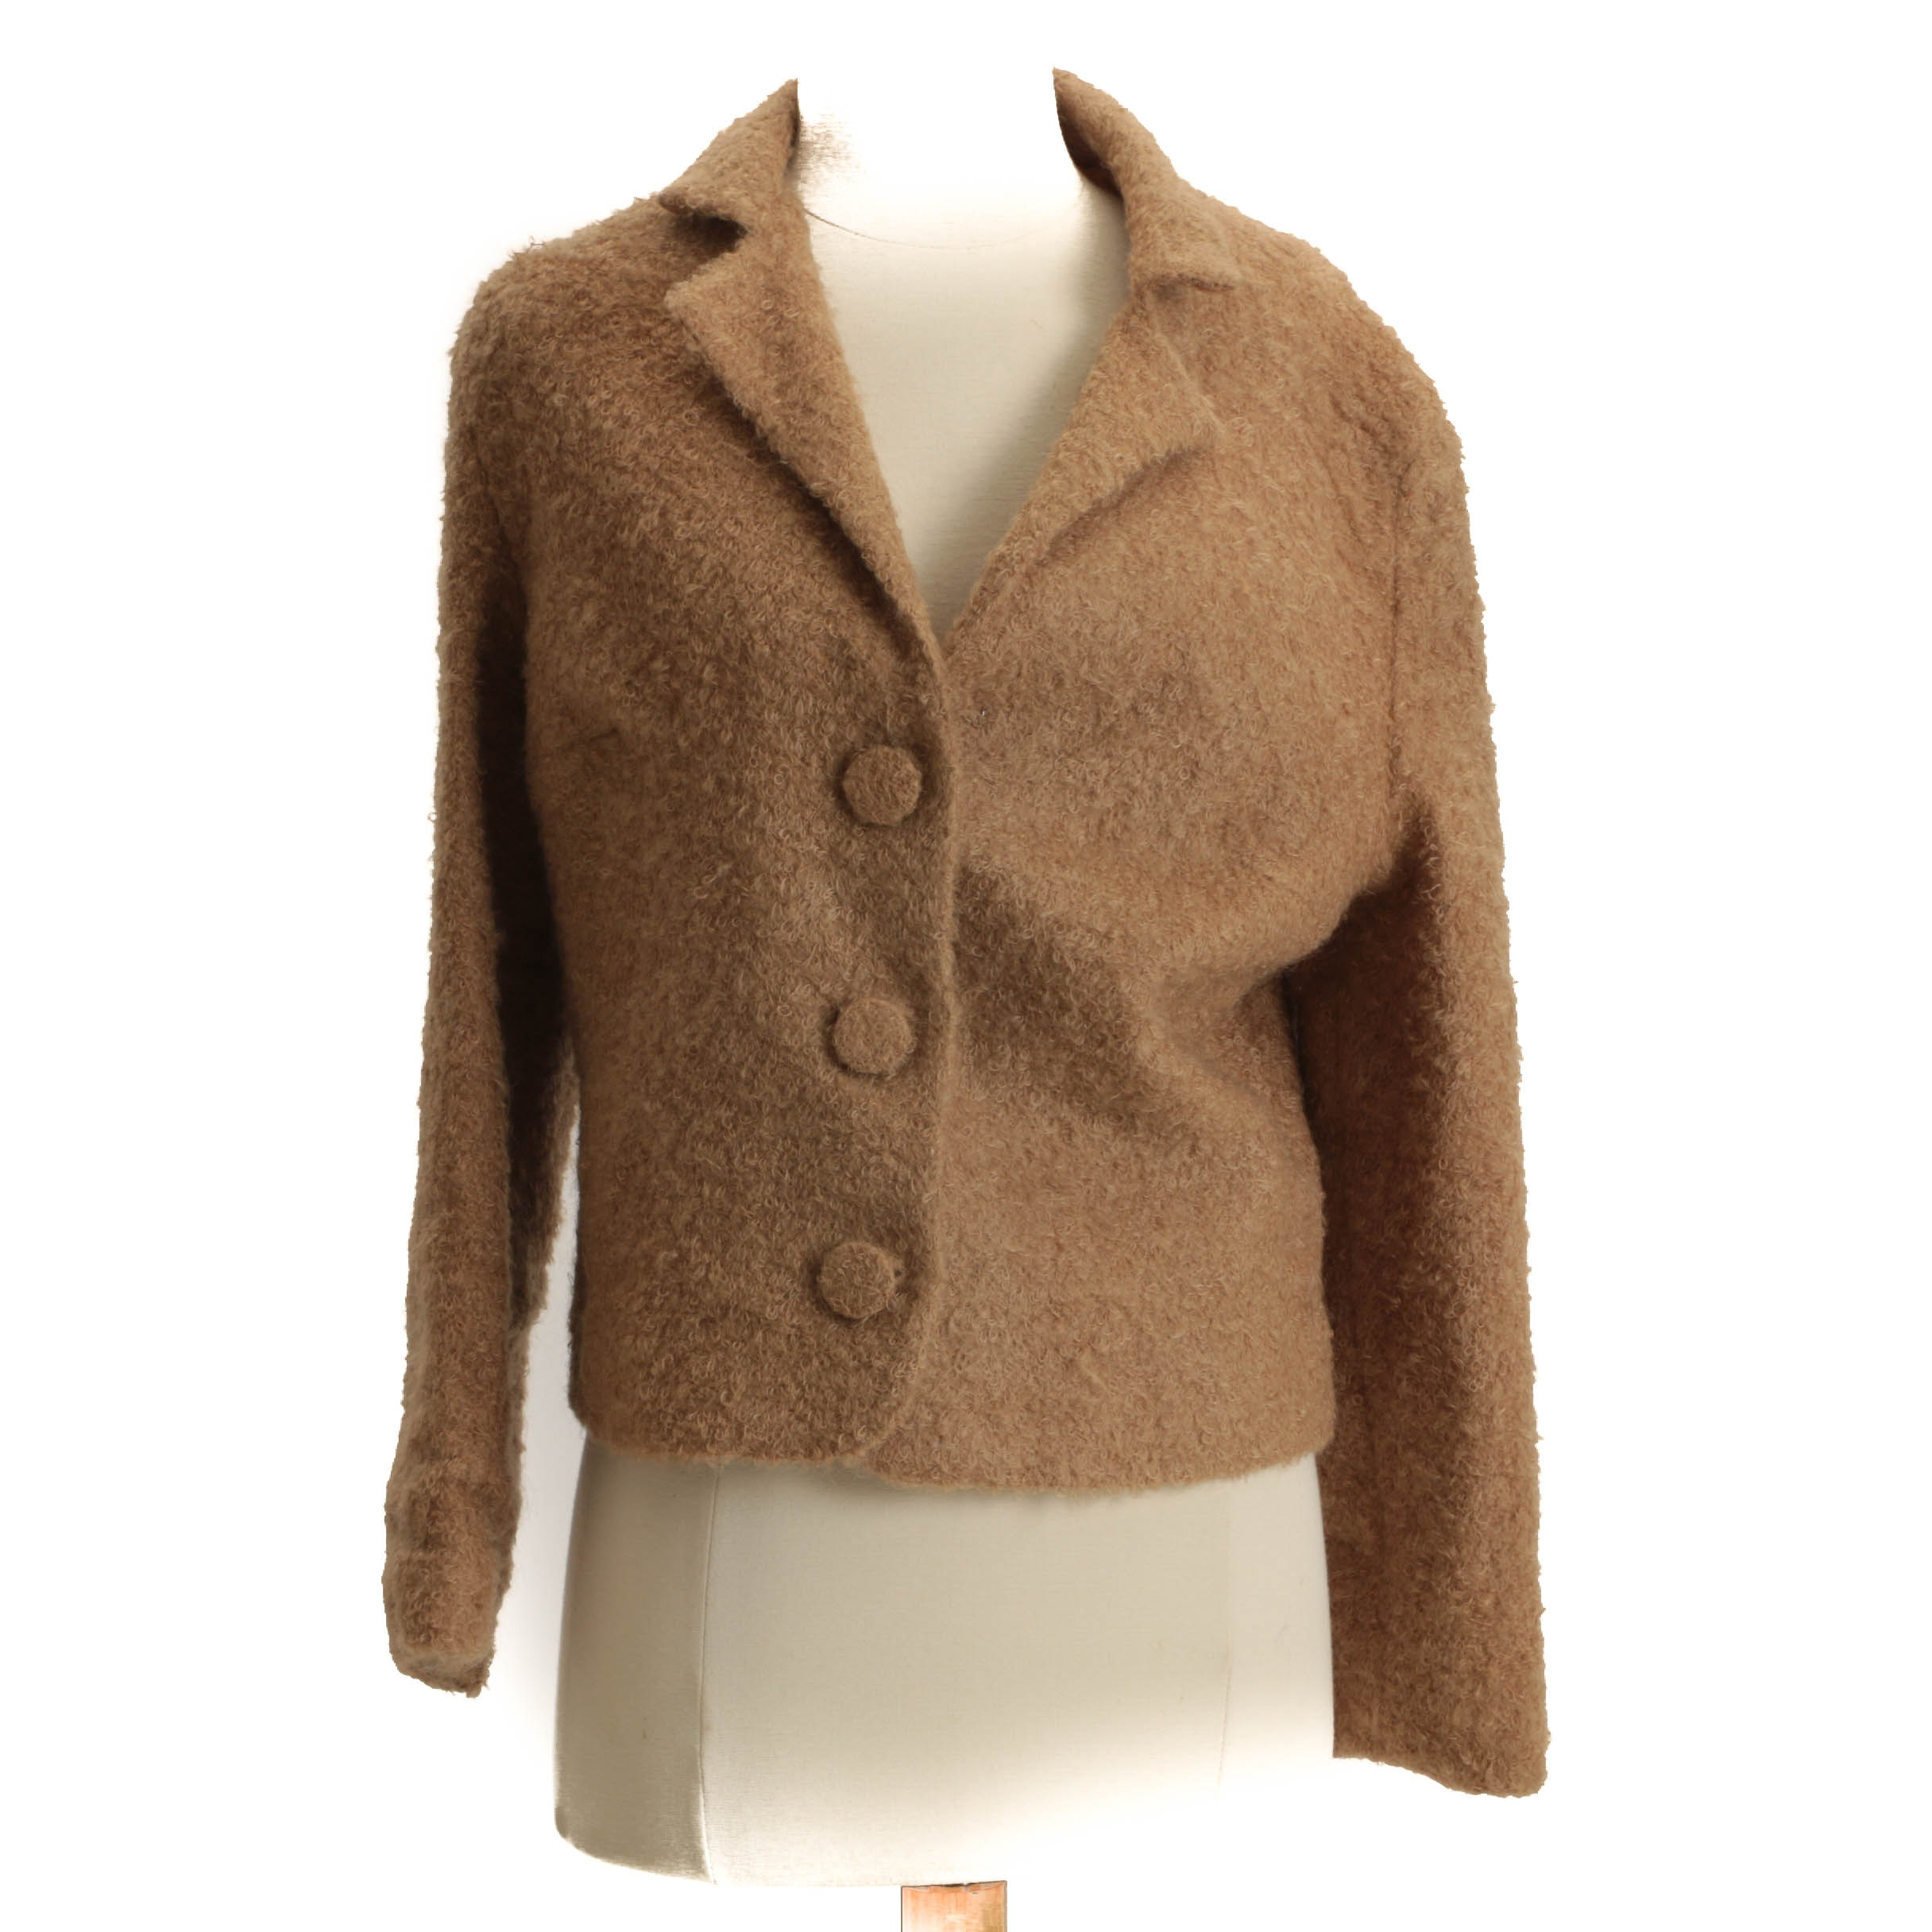 Vintage Camel-Colored Mohair Button-Front Jacket